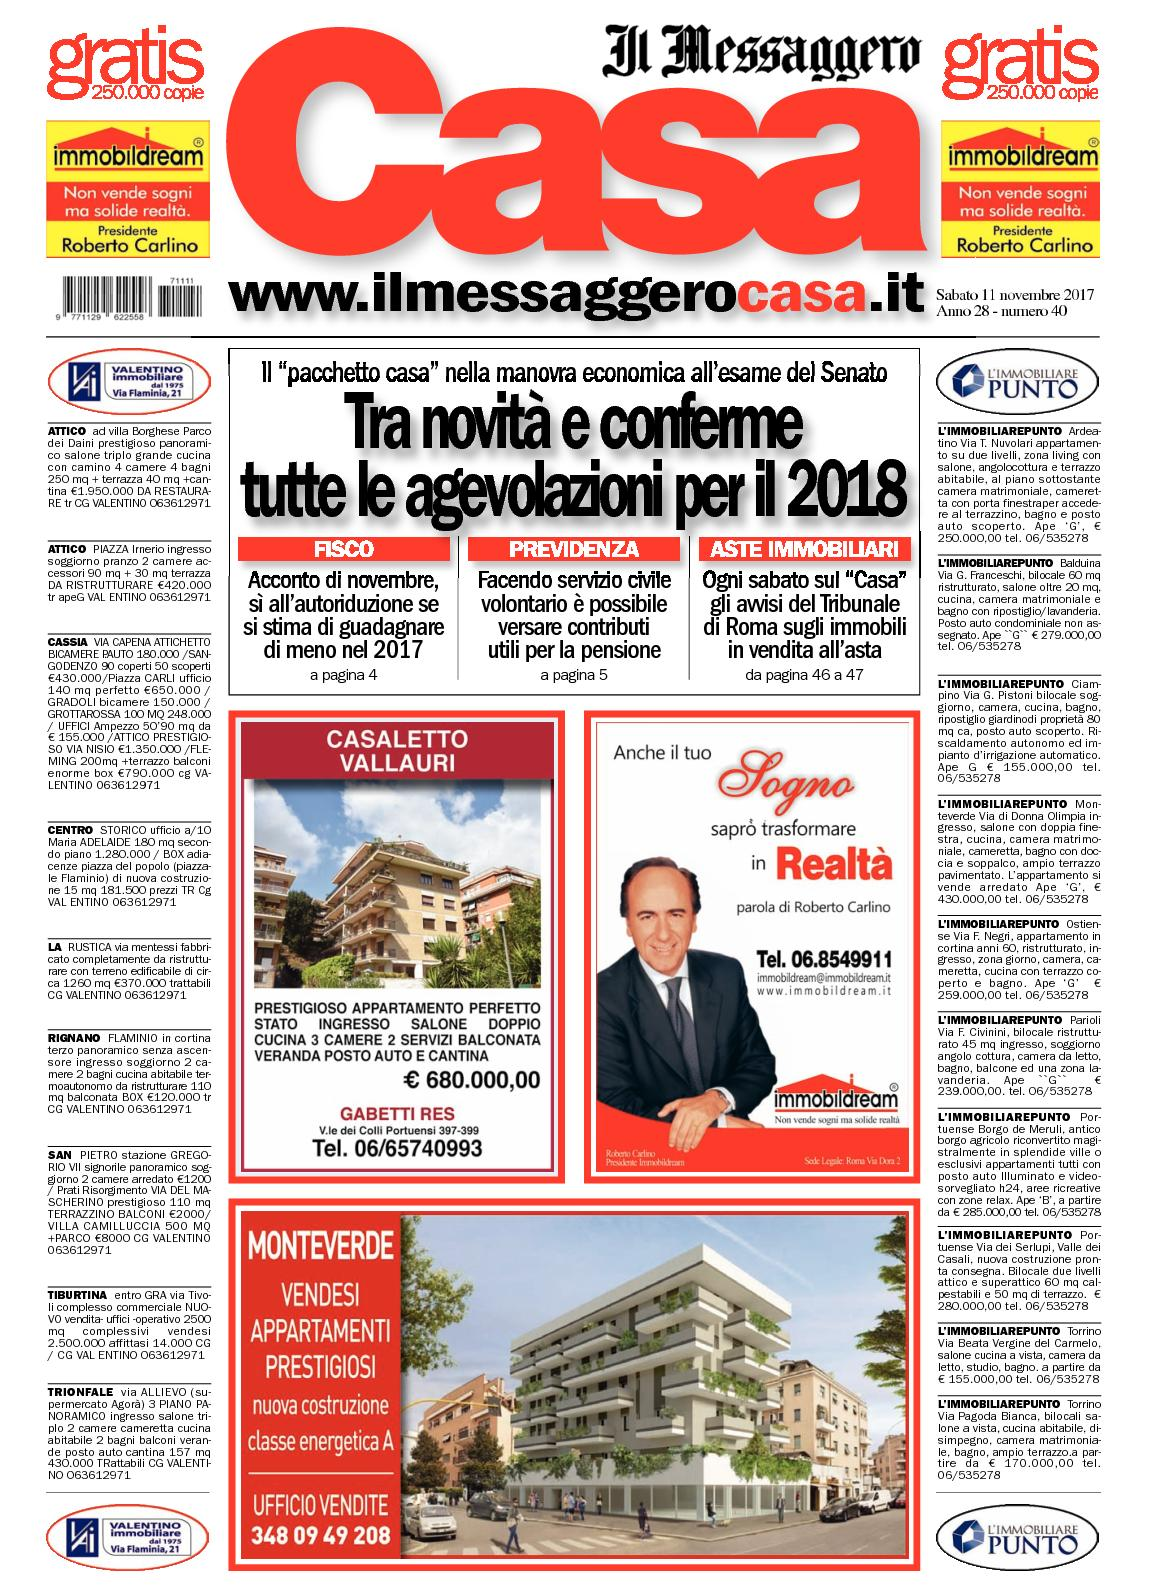 Calaméo Messaggero Casa 11 11 2017